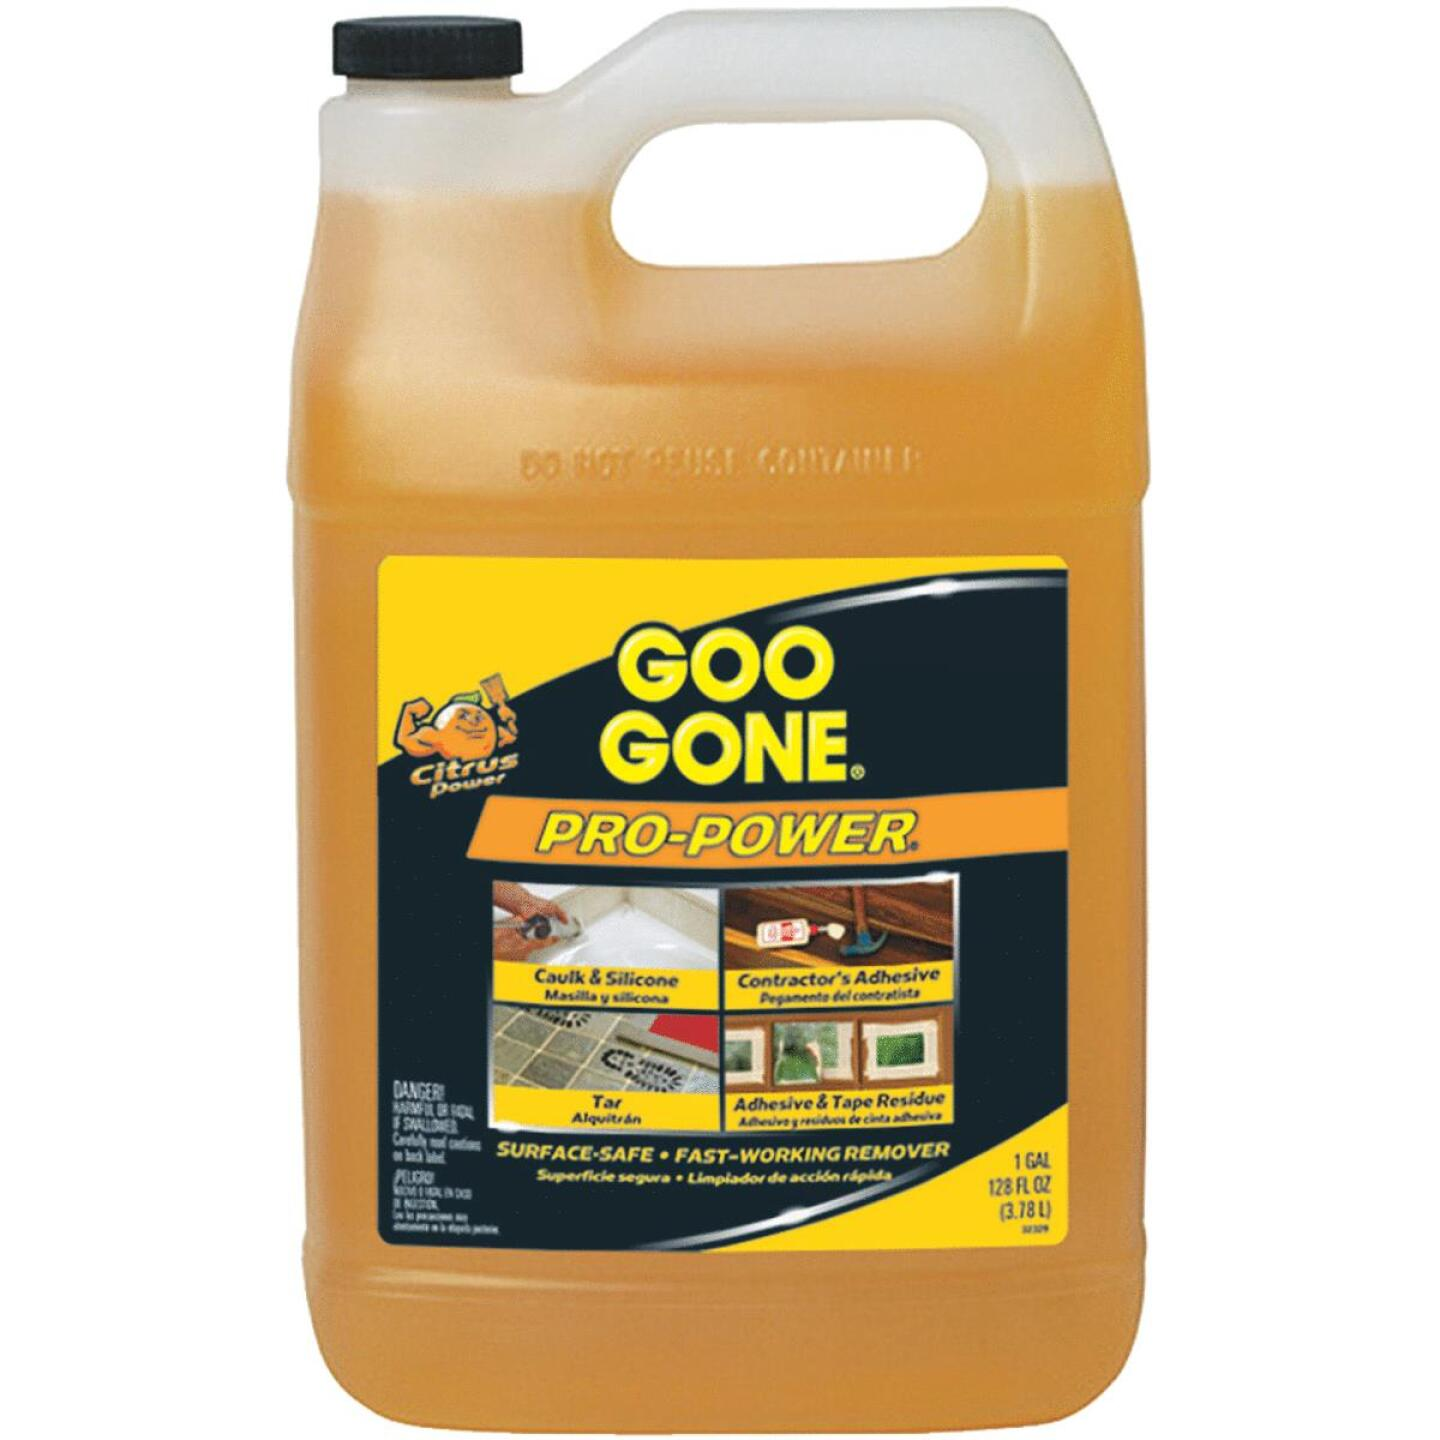 Goo Gone 1 Gal. Pro-Power Adhesive Remover Image 137